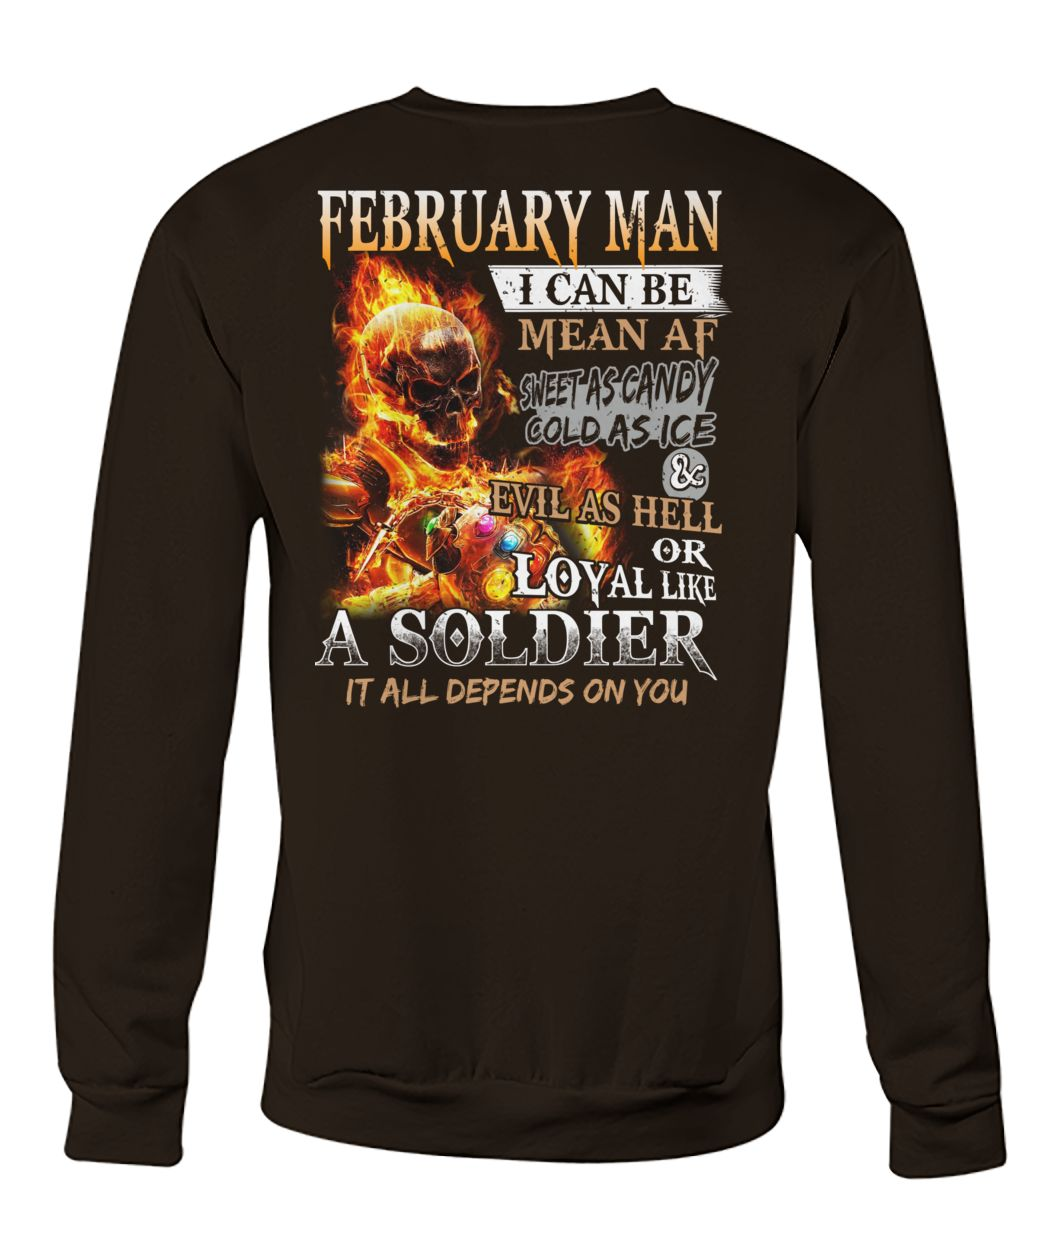 February man I can be mean af sweet as candy gold as ice and evil as hell crew neck sweatshirt